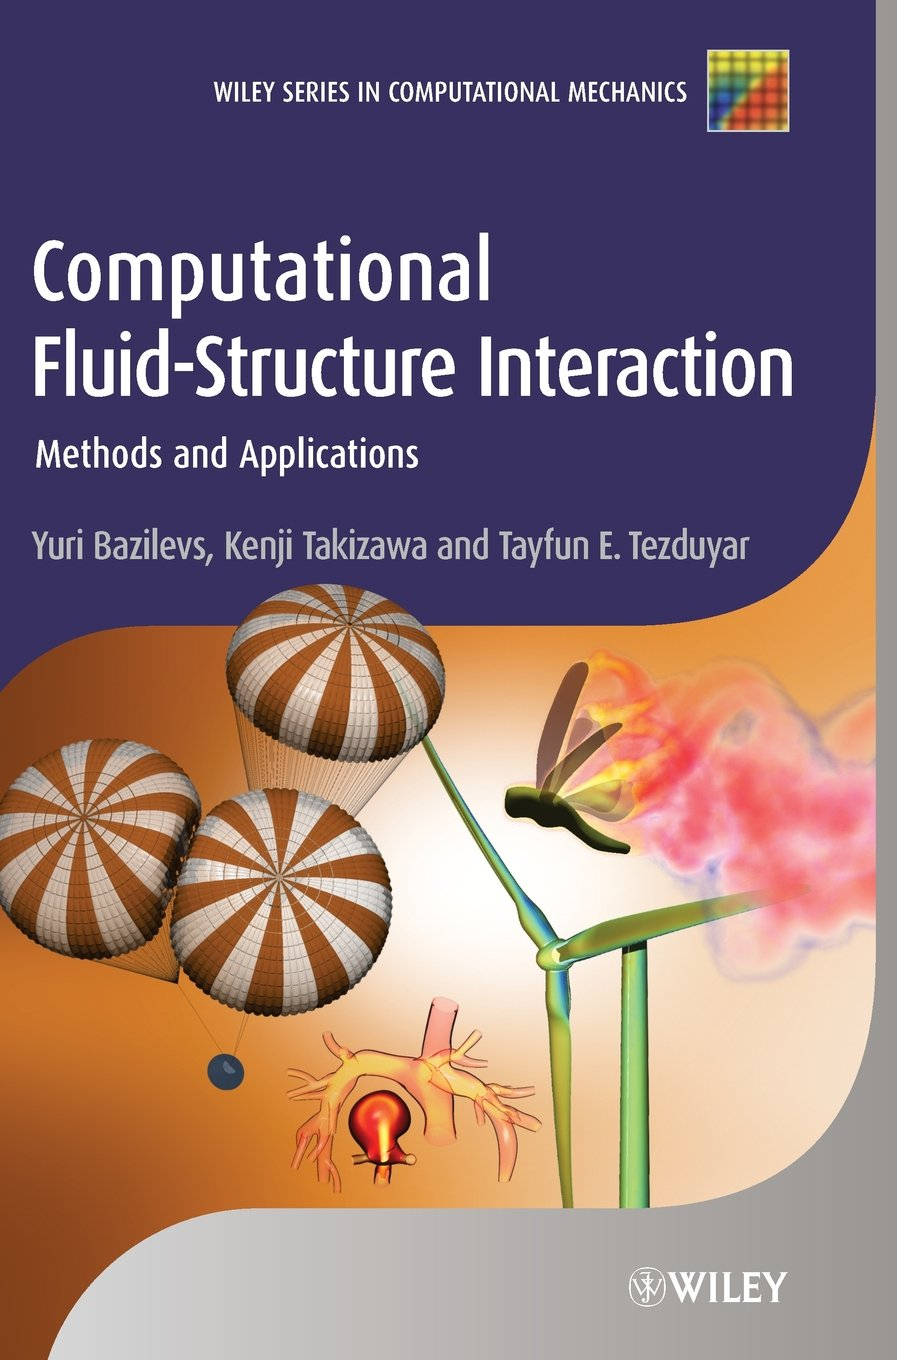 Computational Fluid-Structure Interaction: Methods and Applications 71DMiT0BnpL._SL1360_